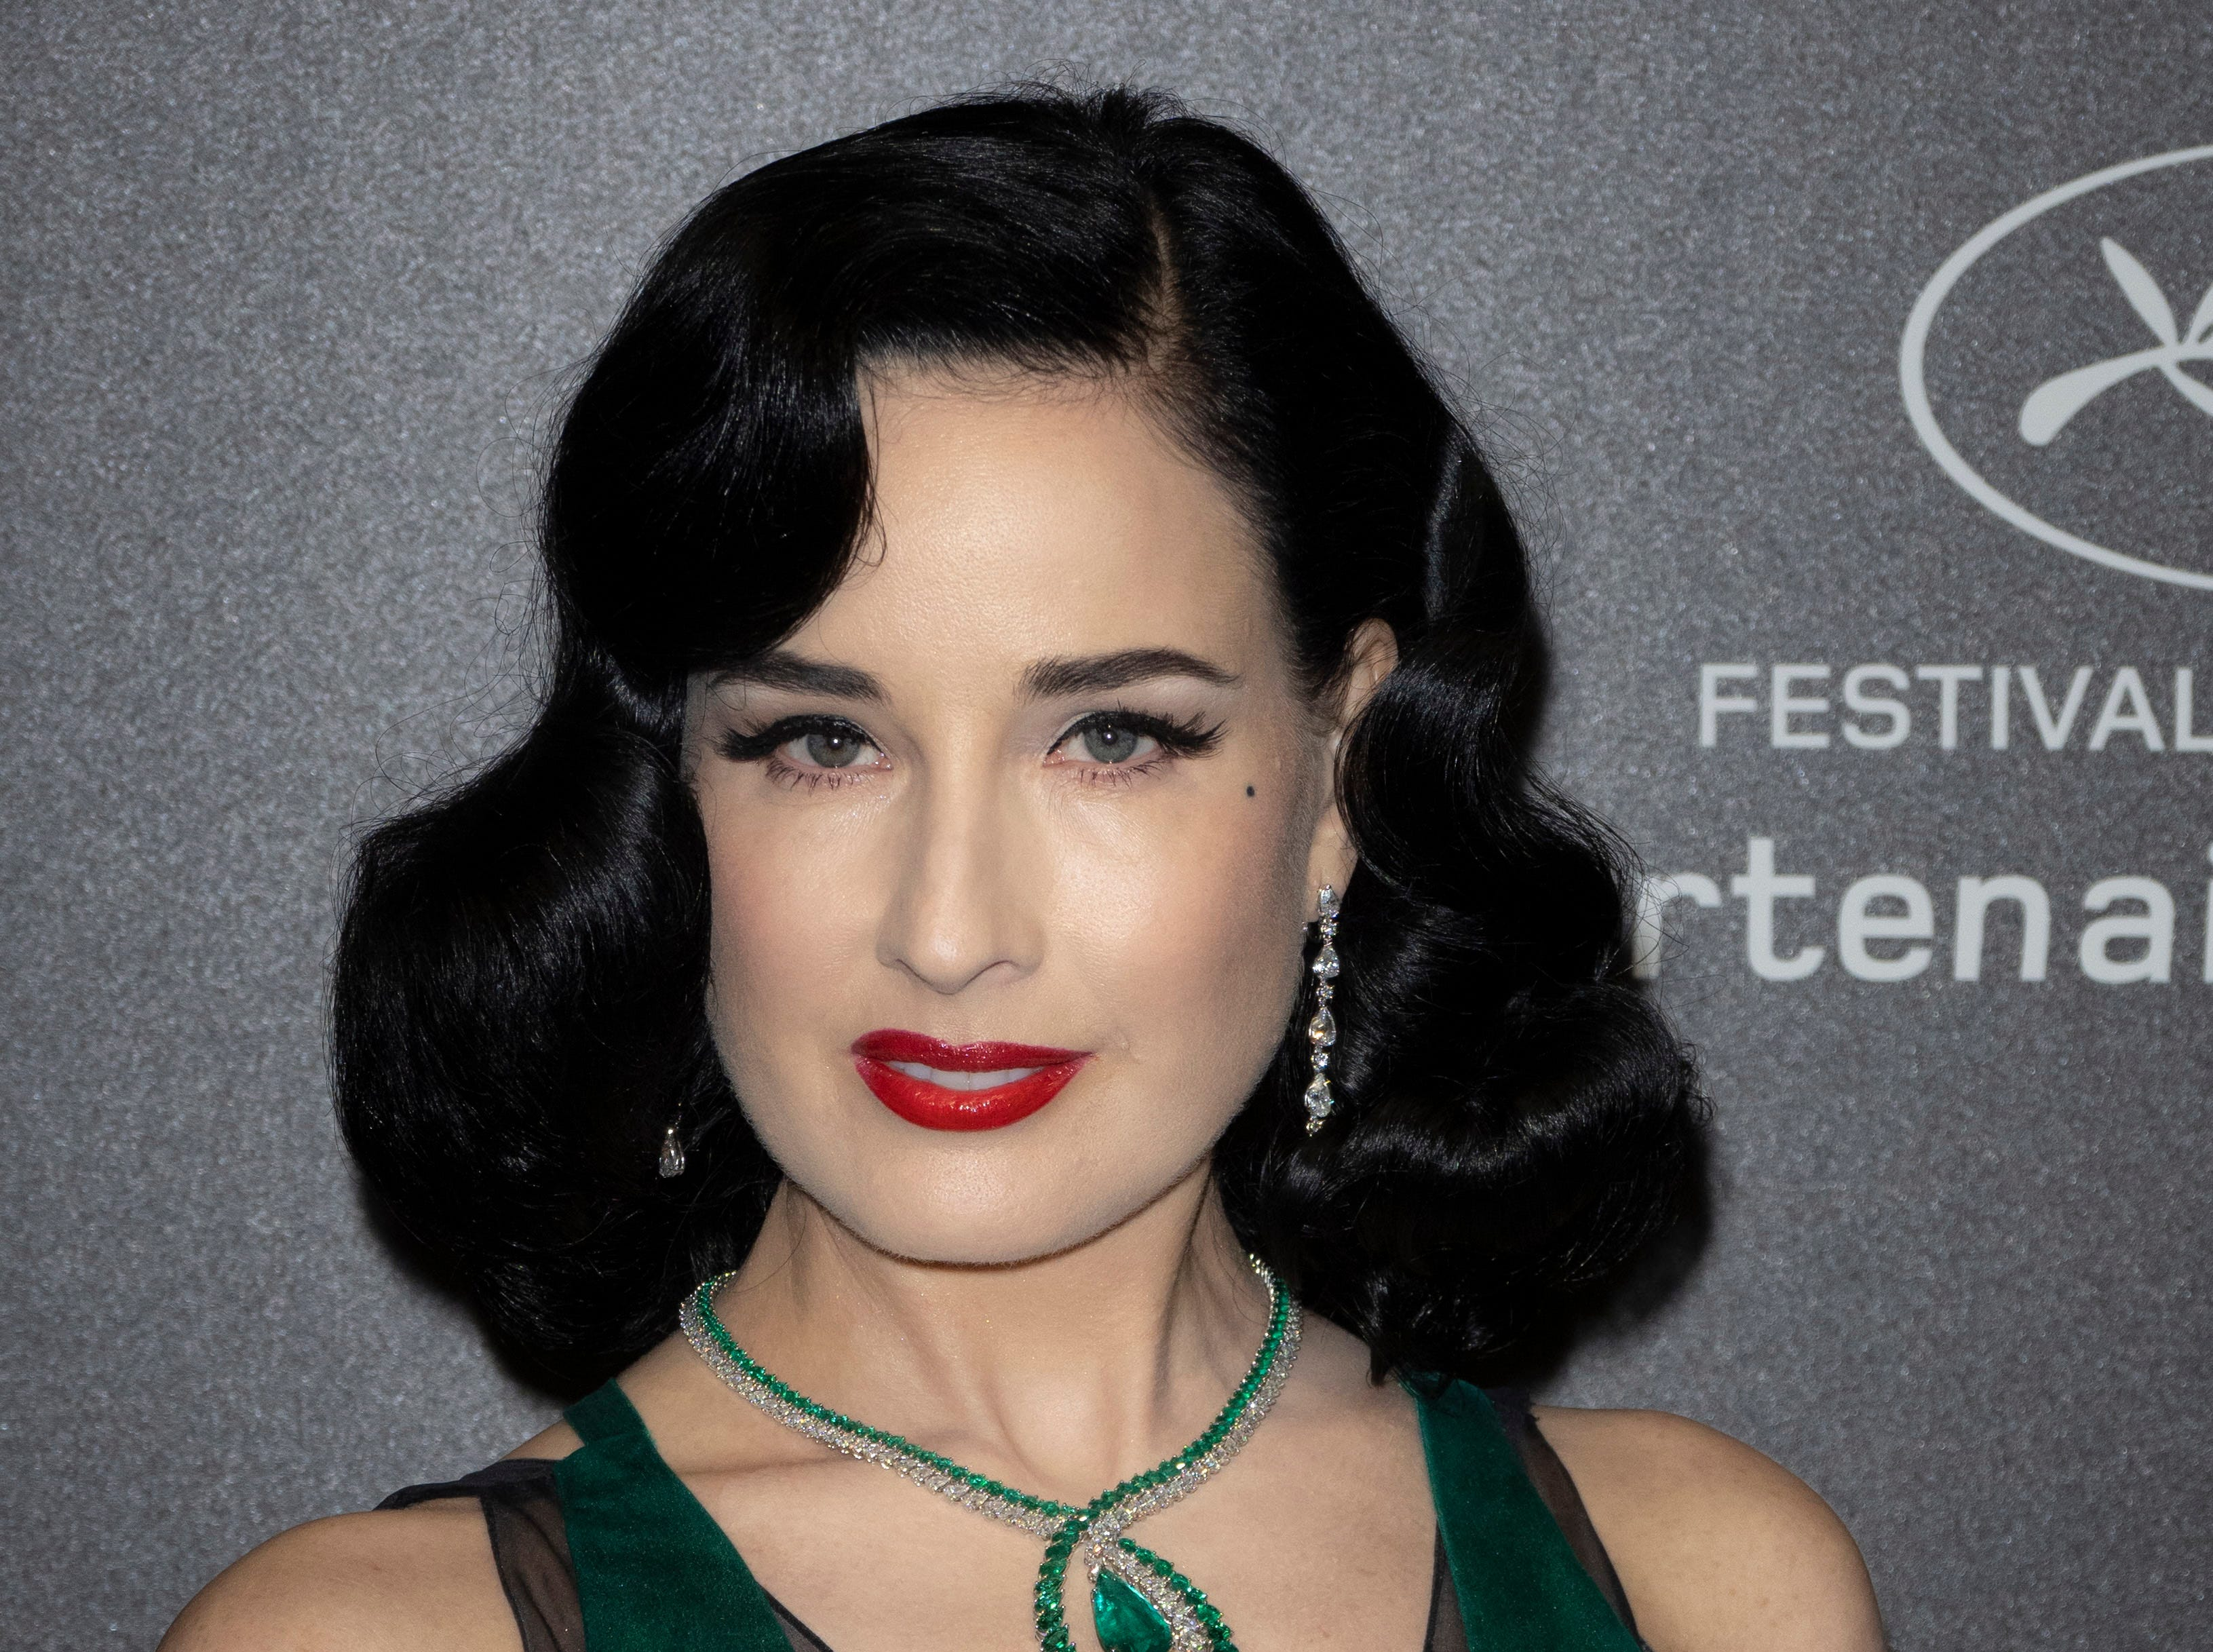 Dancer and costume designer Dita Von Teese attends the Chopard Love Party during the 72nd annual Cannes Film Festival in Le Cannet, France on May 17, 2019.